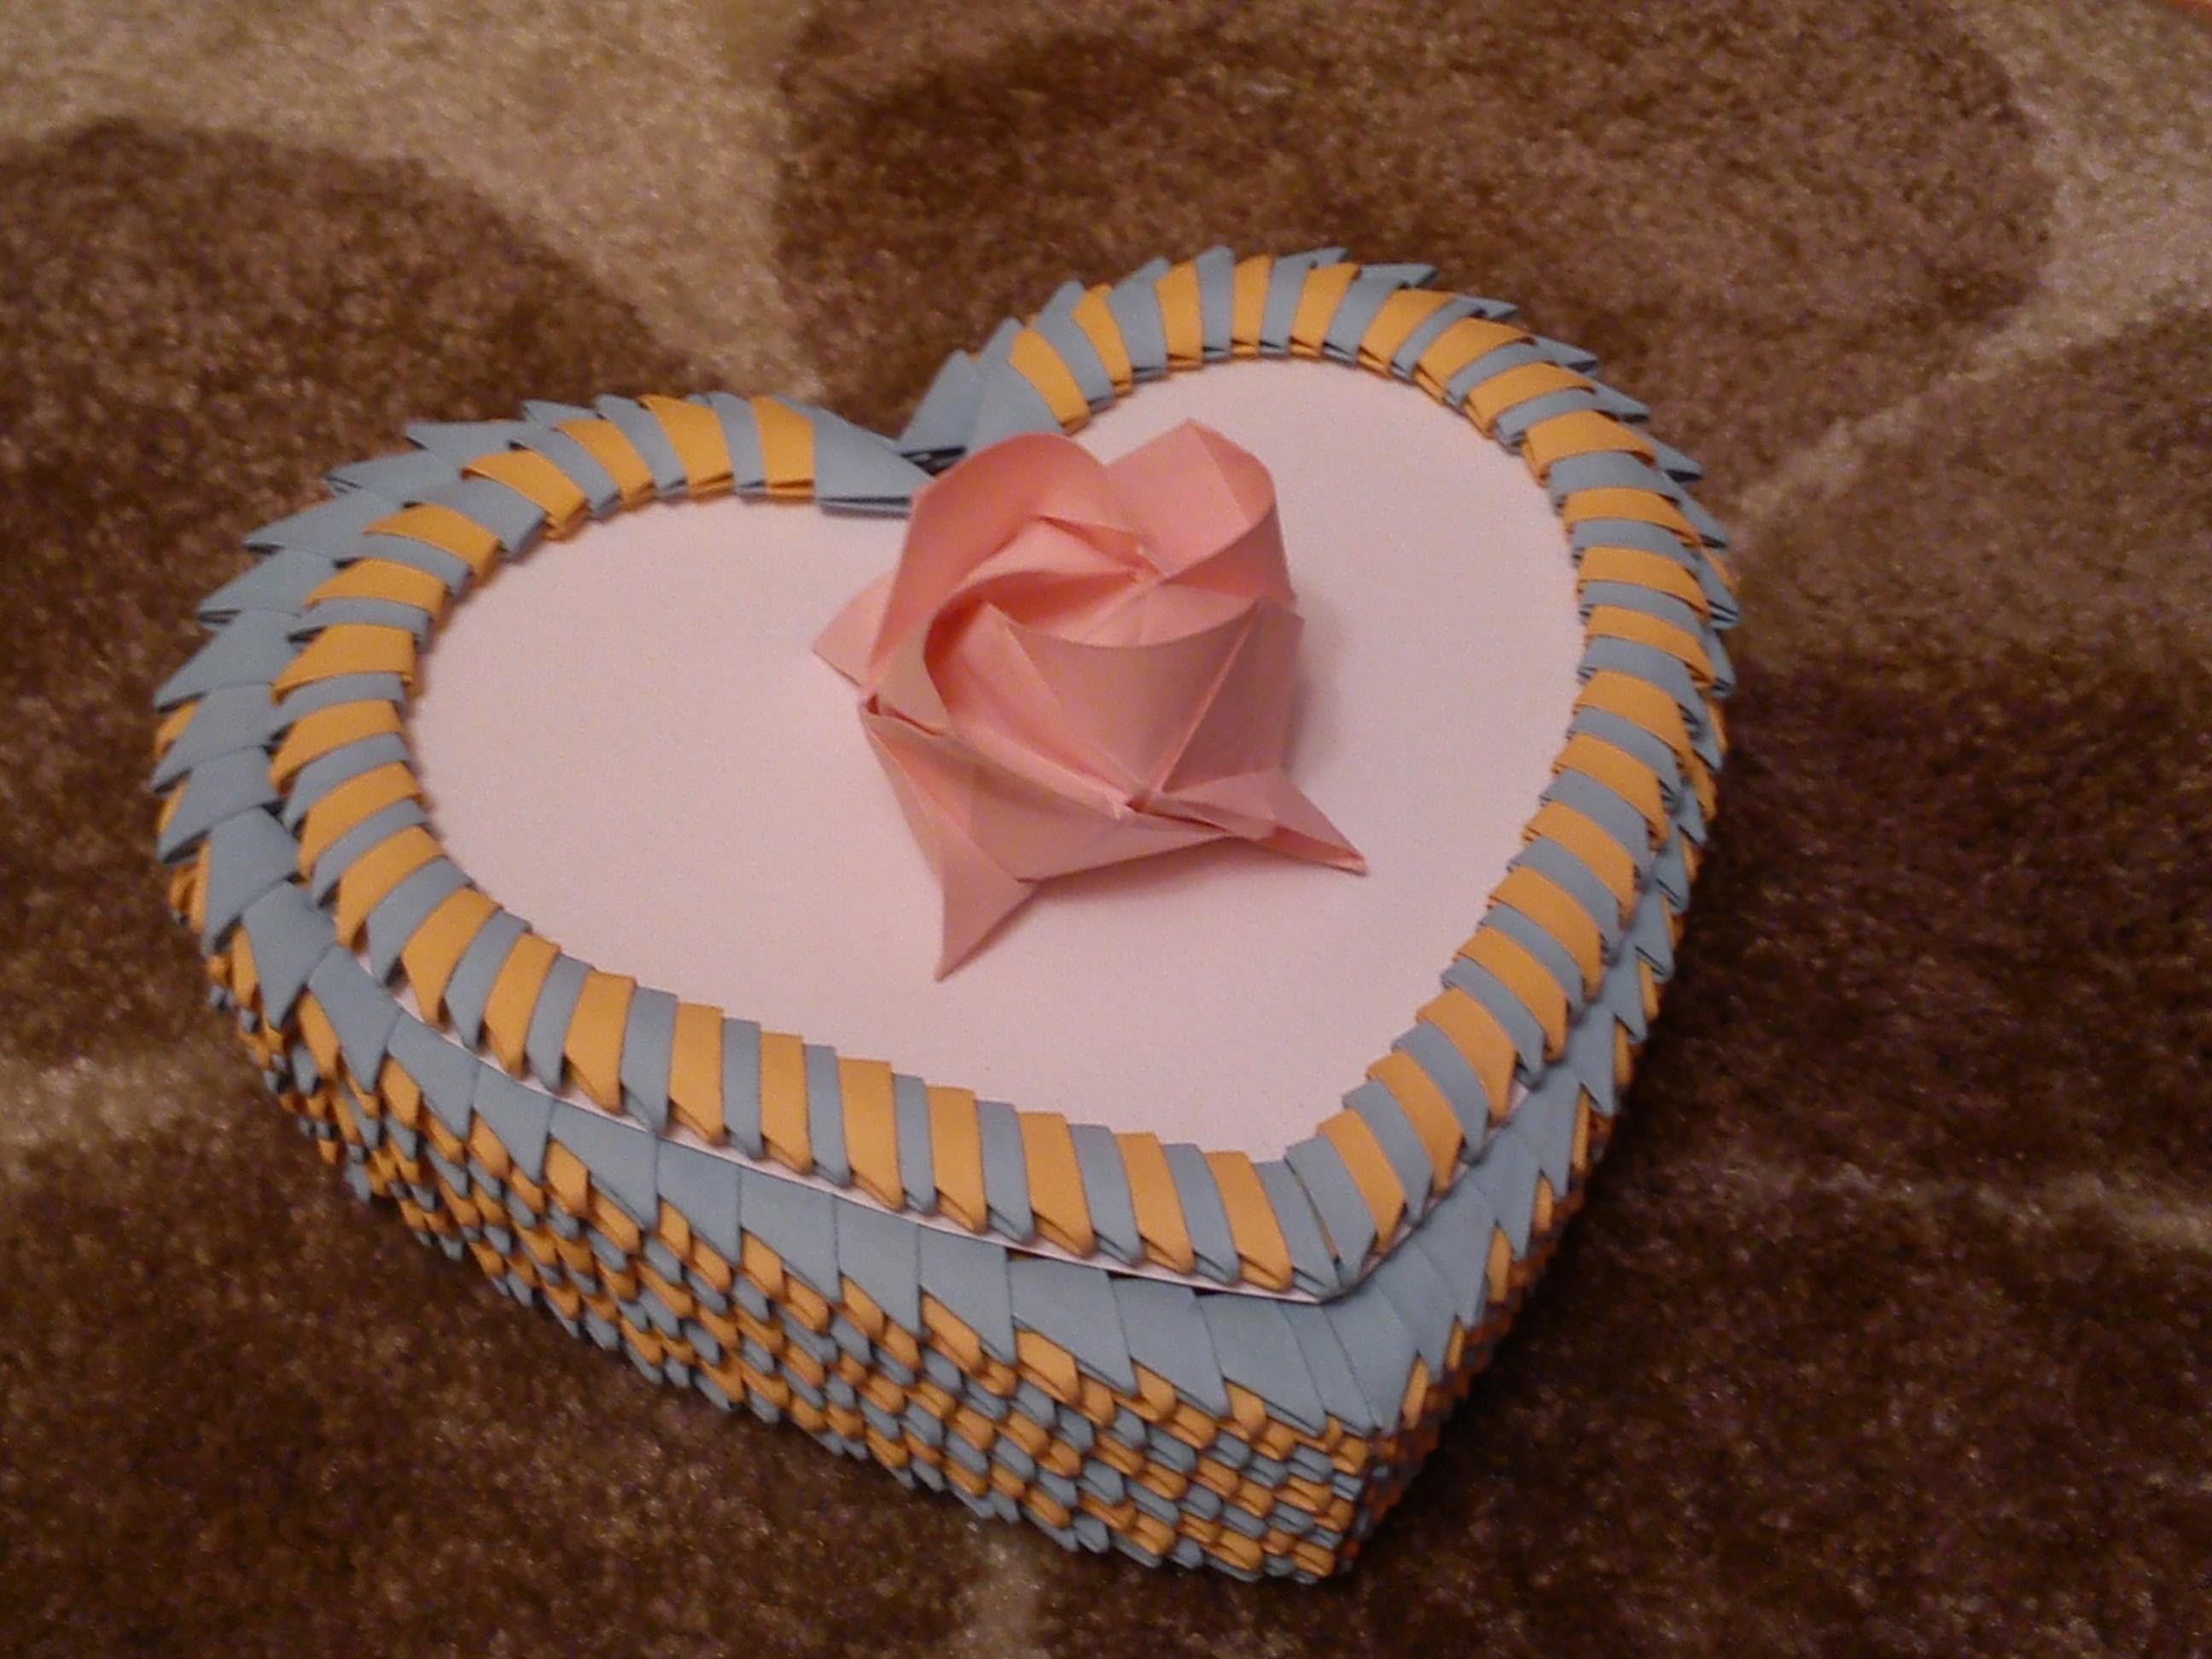 3D Origami Heart Box Tutorial